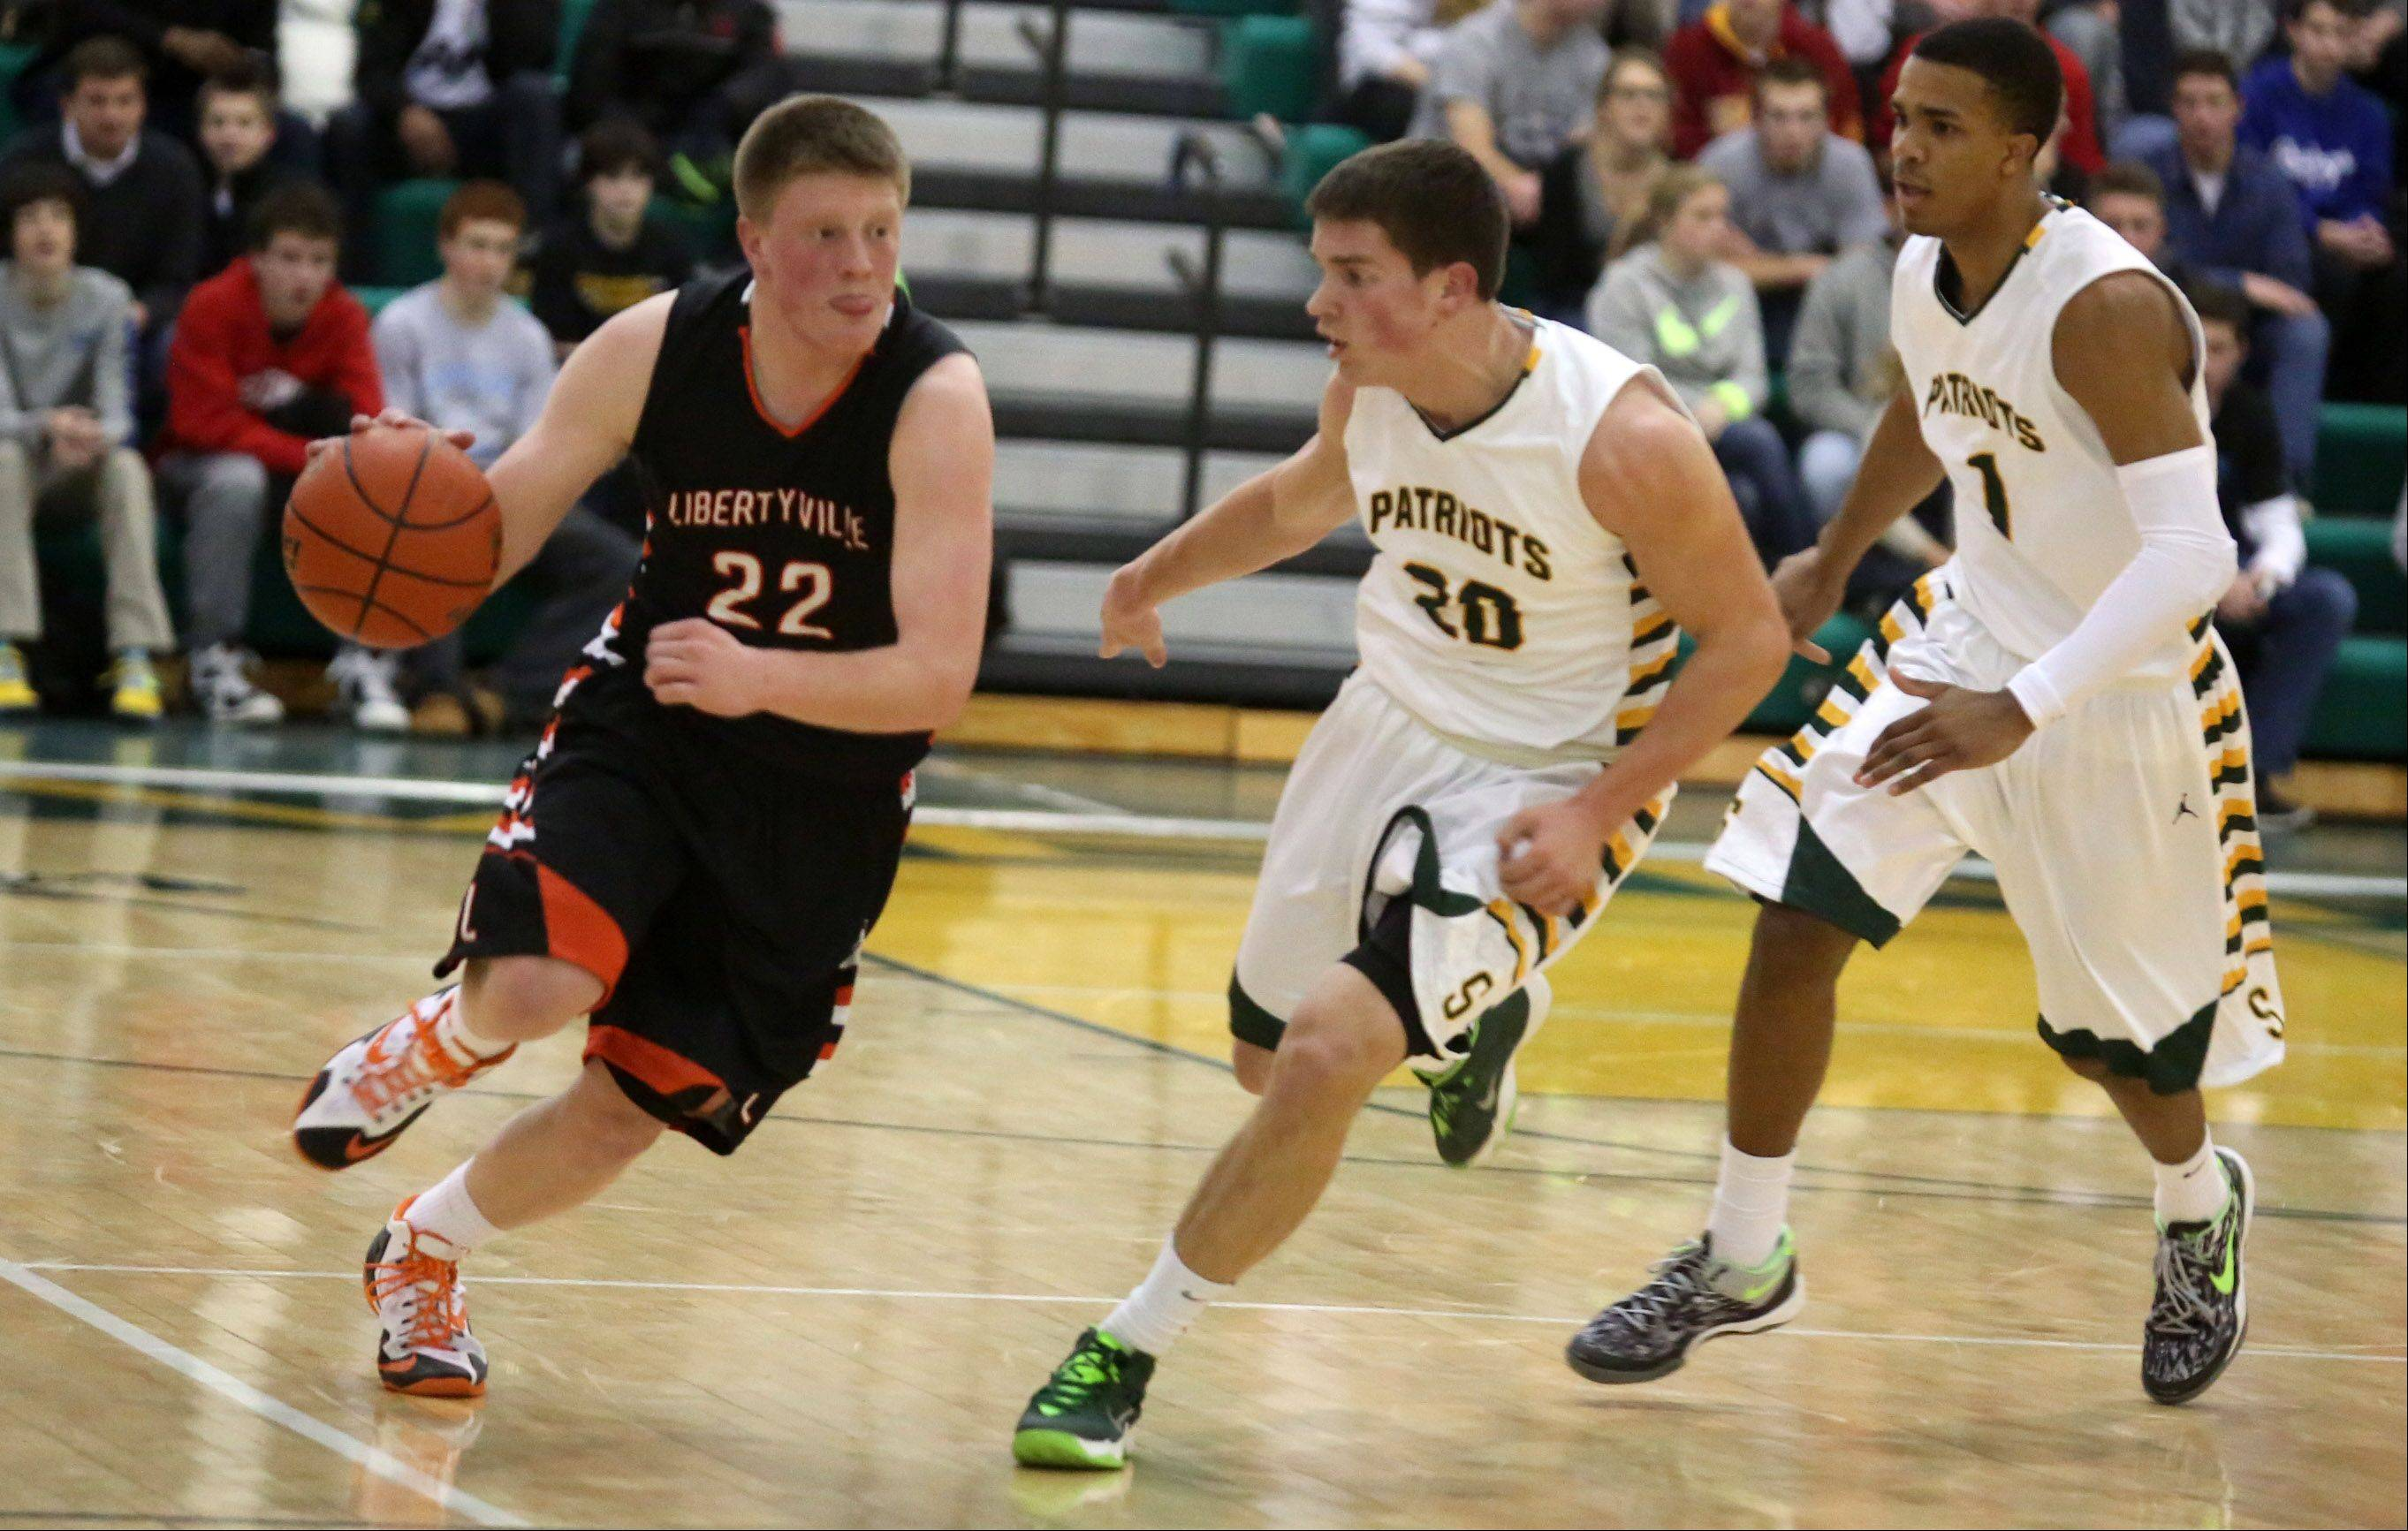 Images: Stevenson vs. Libertyville boys basketball